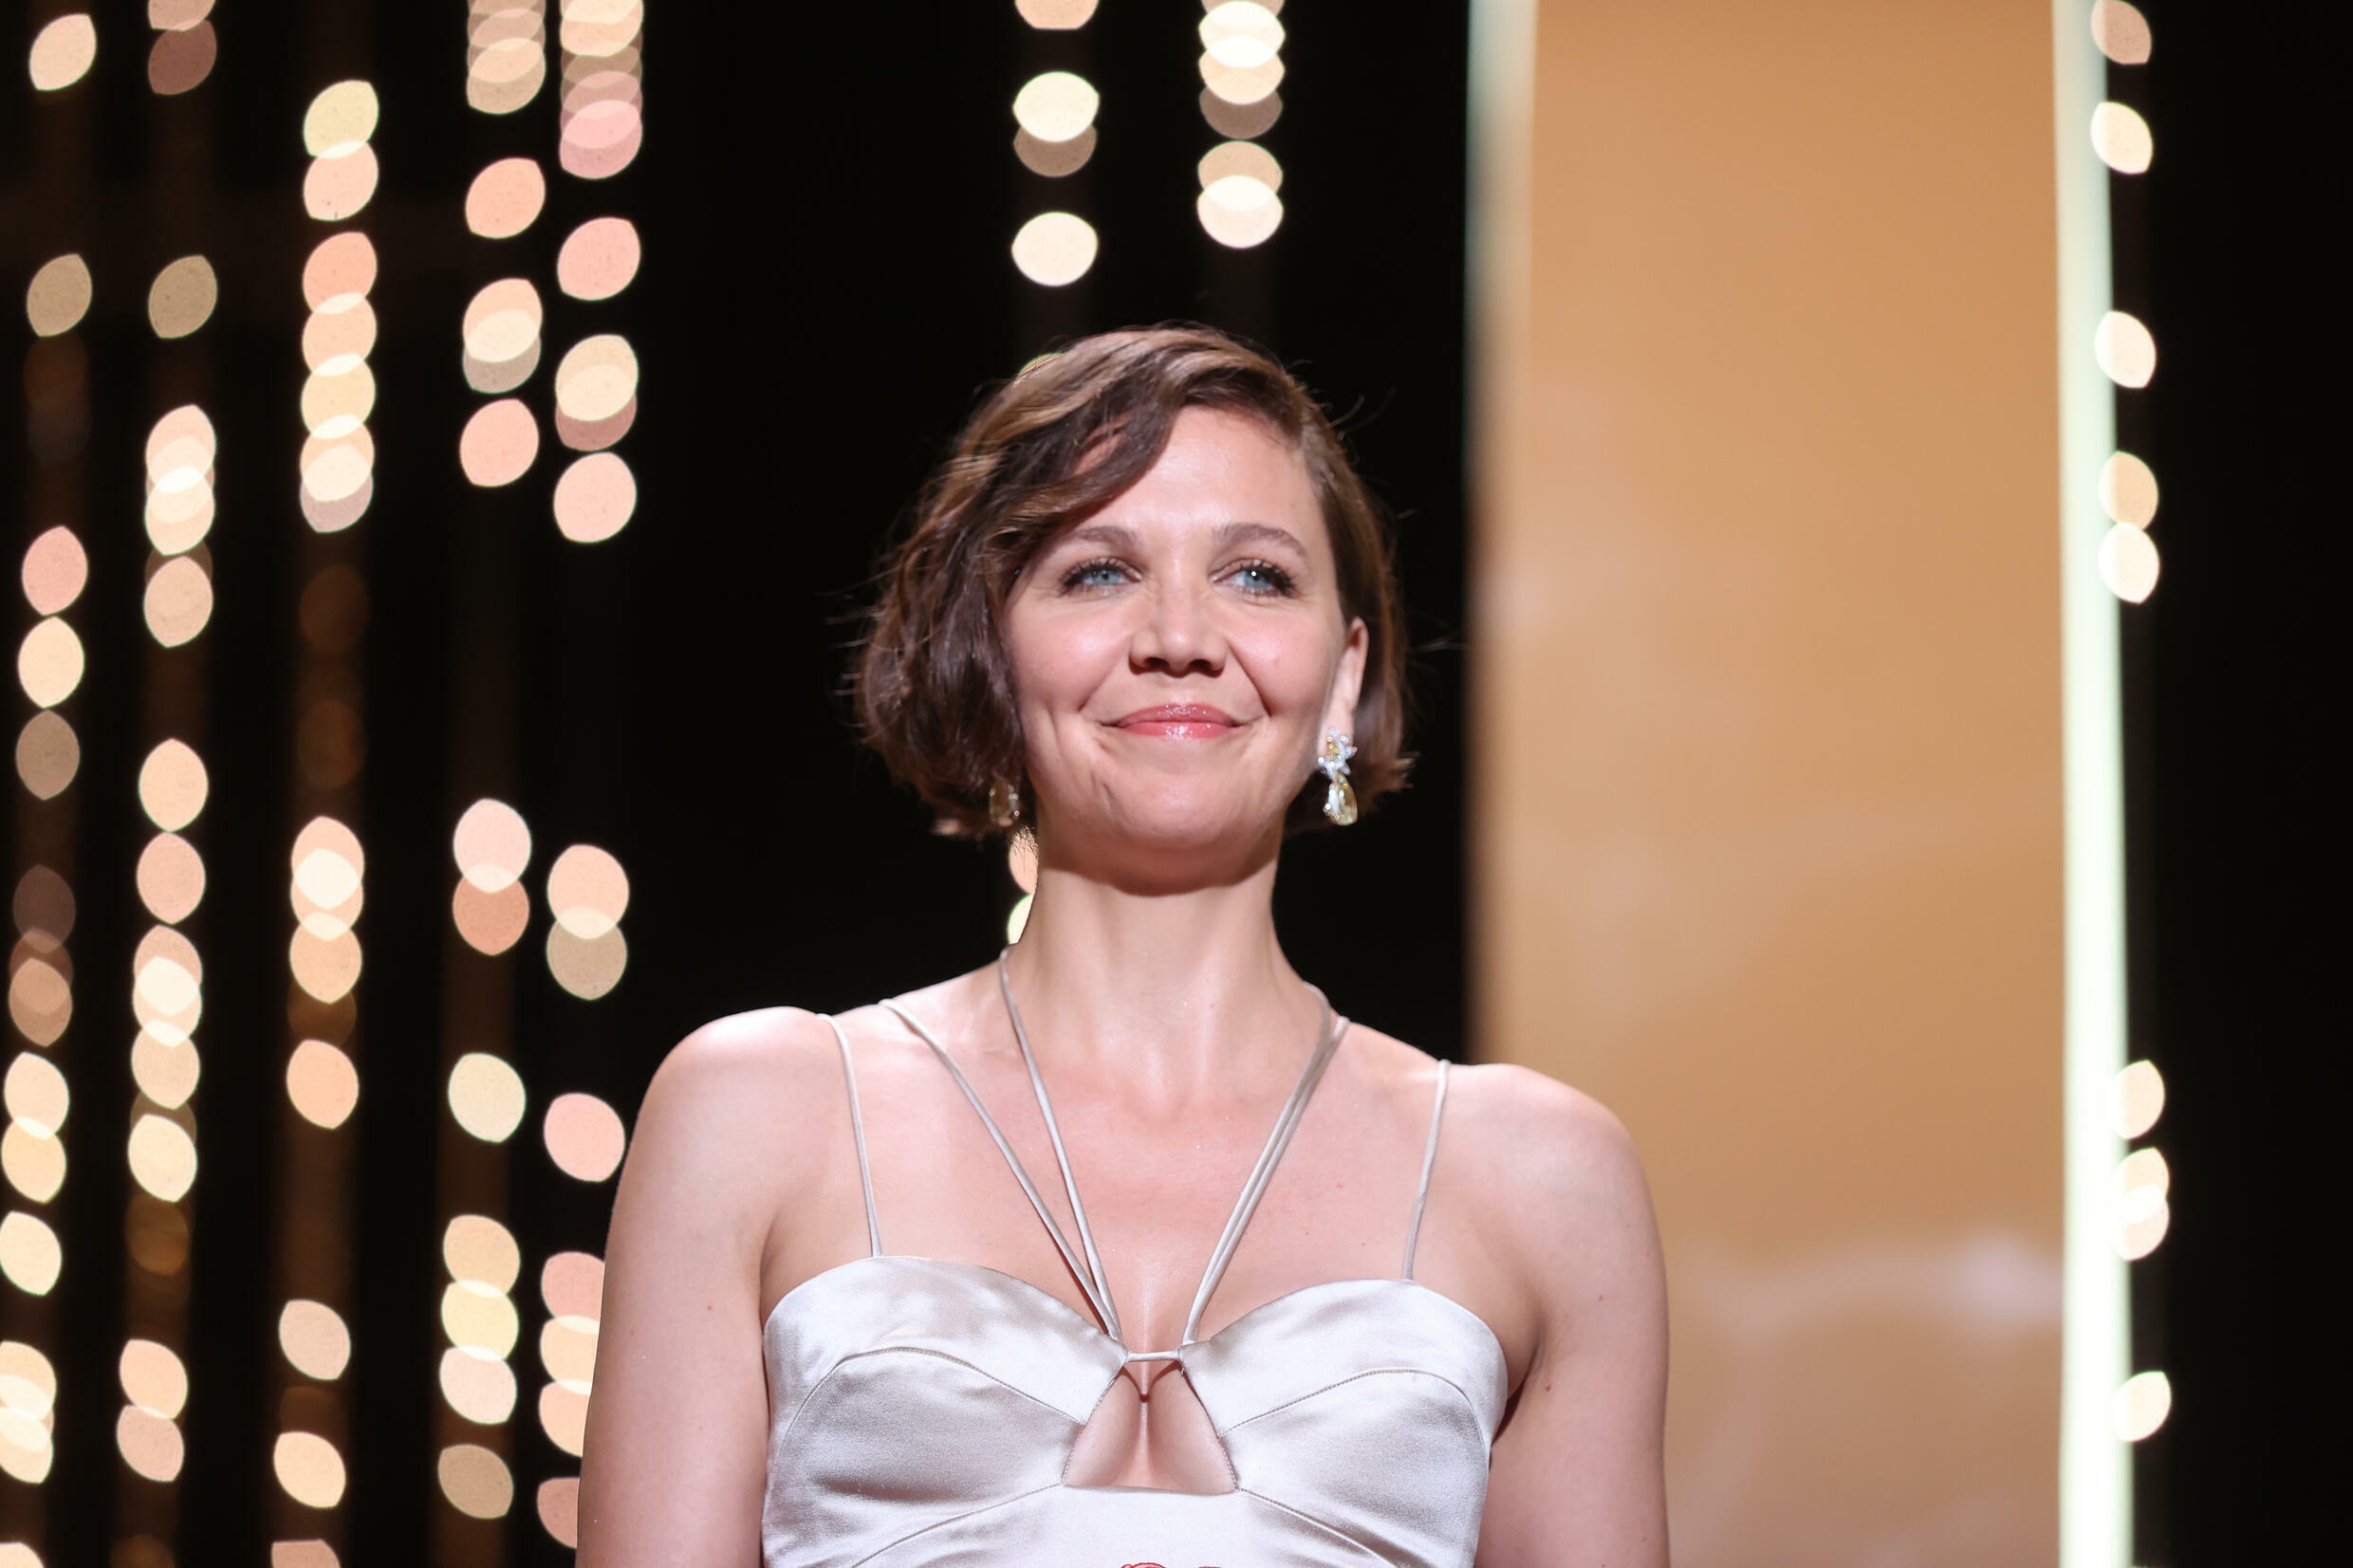 American actress Maggie Gyllenhaal, July 17, 2021 in Cannes